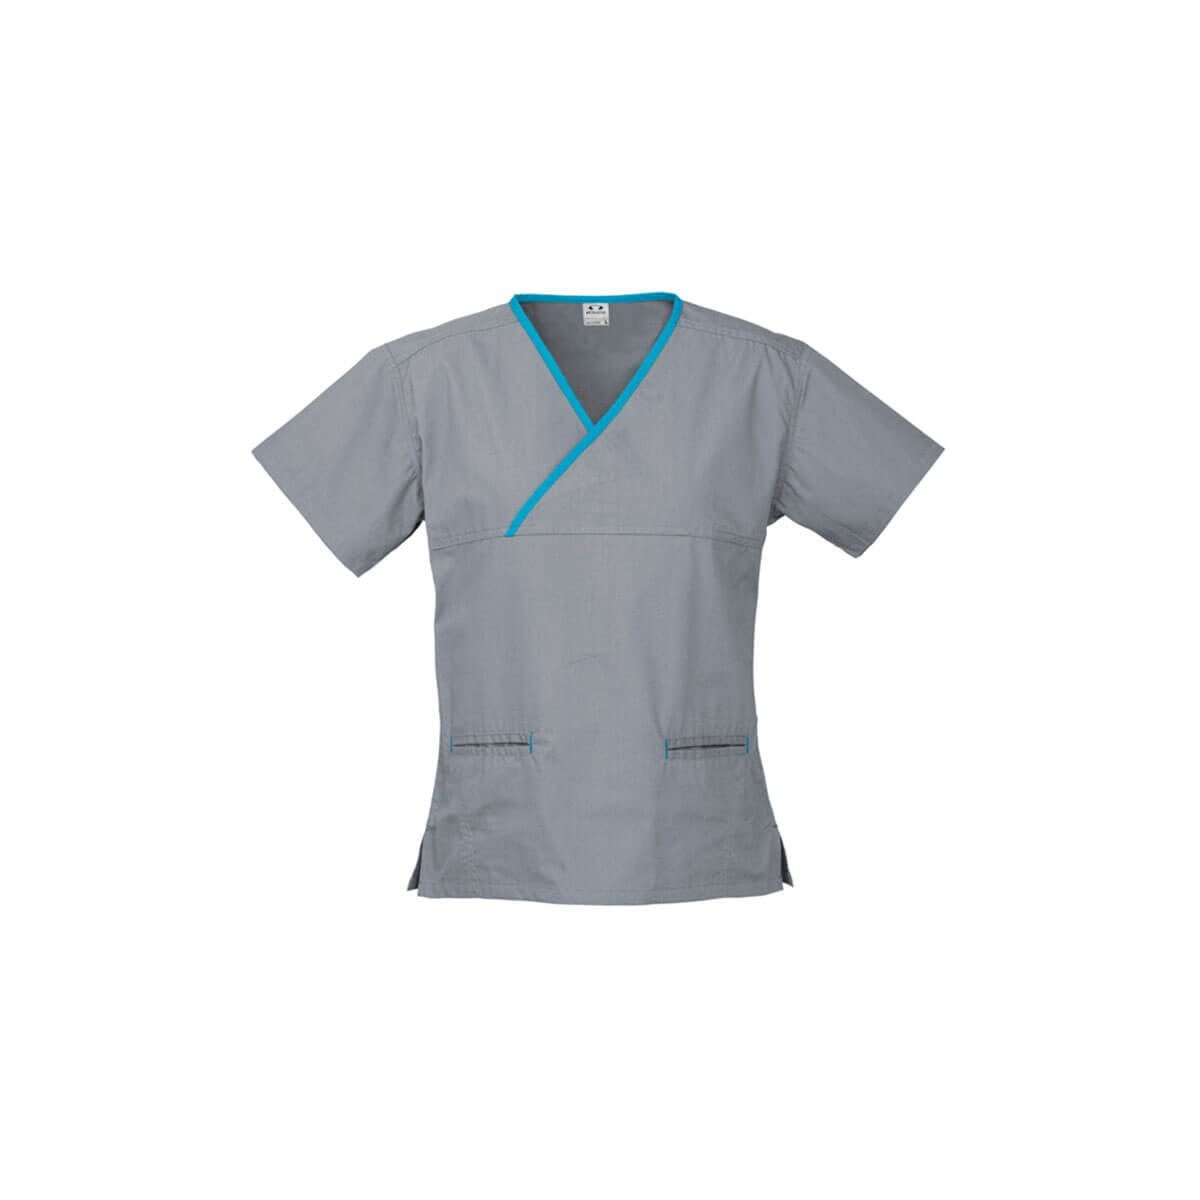 Ladies Contrast Crossover Scrubs Top-Pewter / Aqua